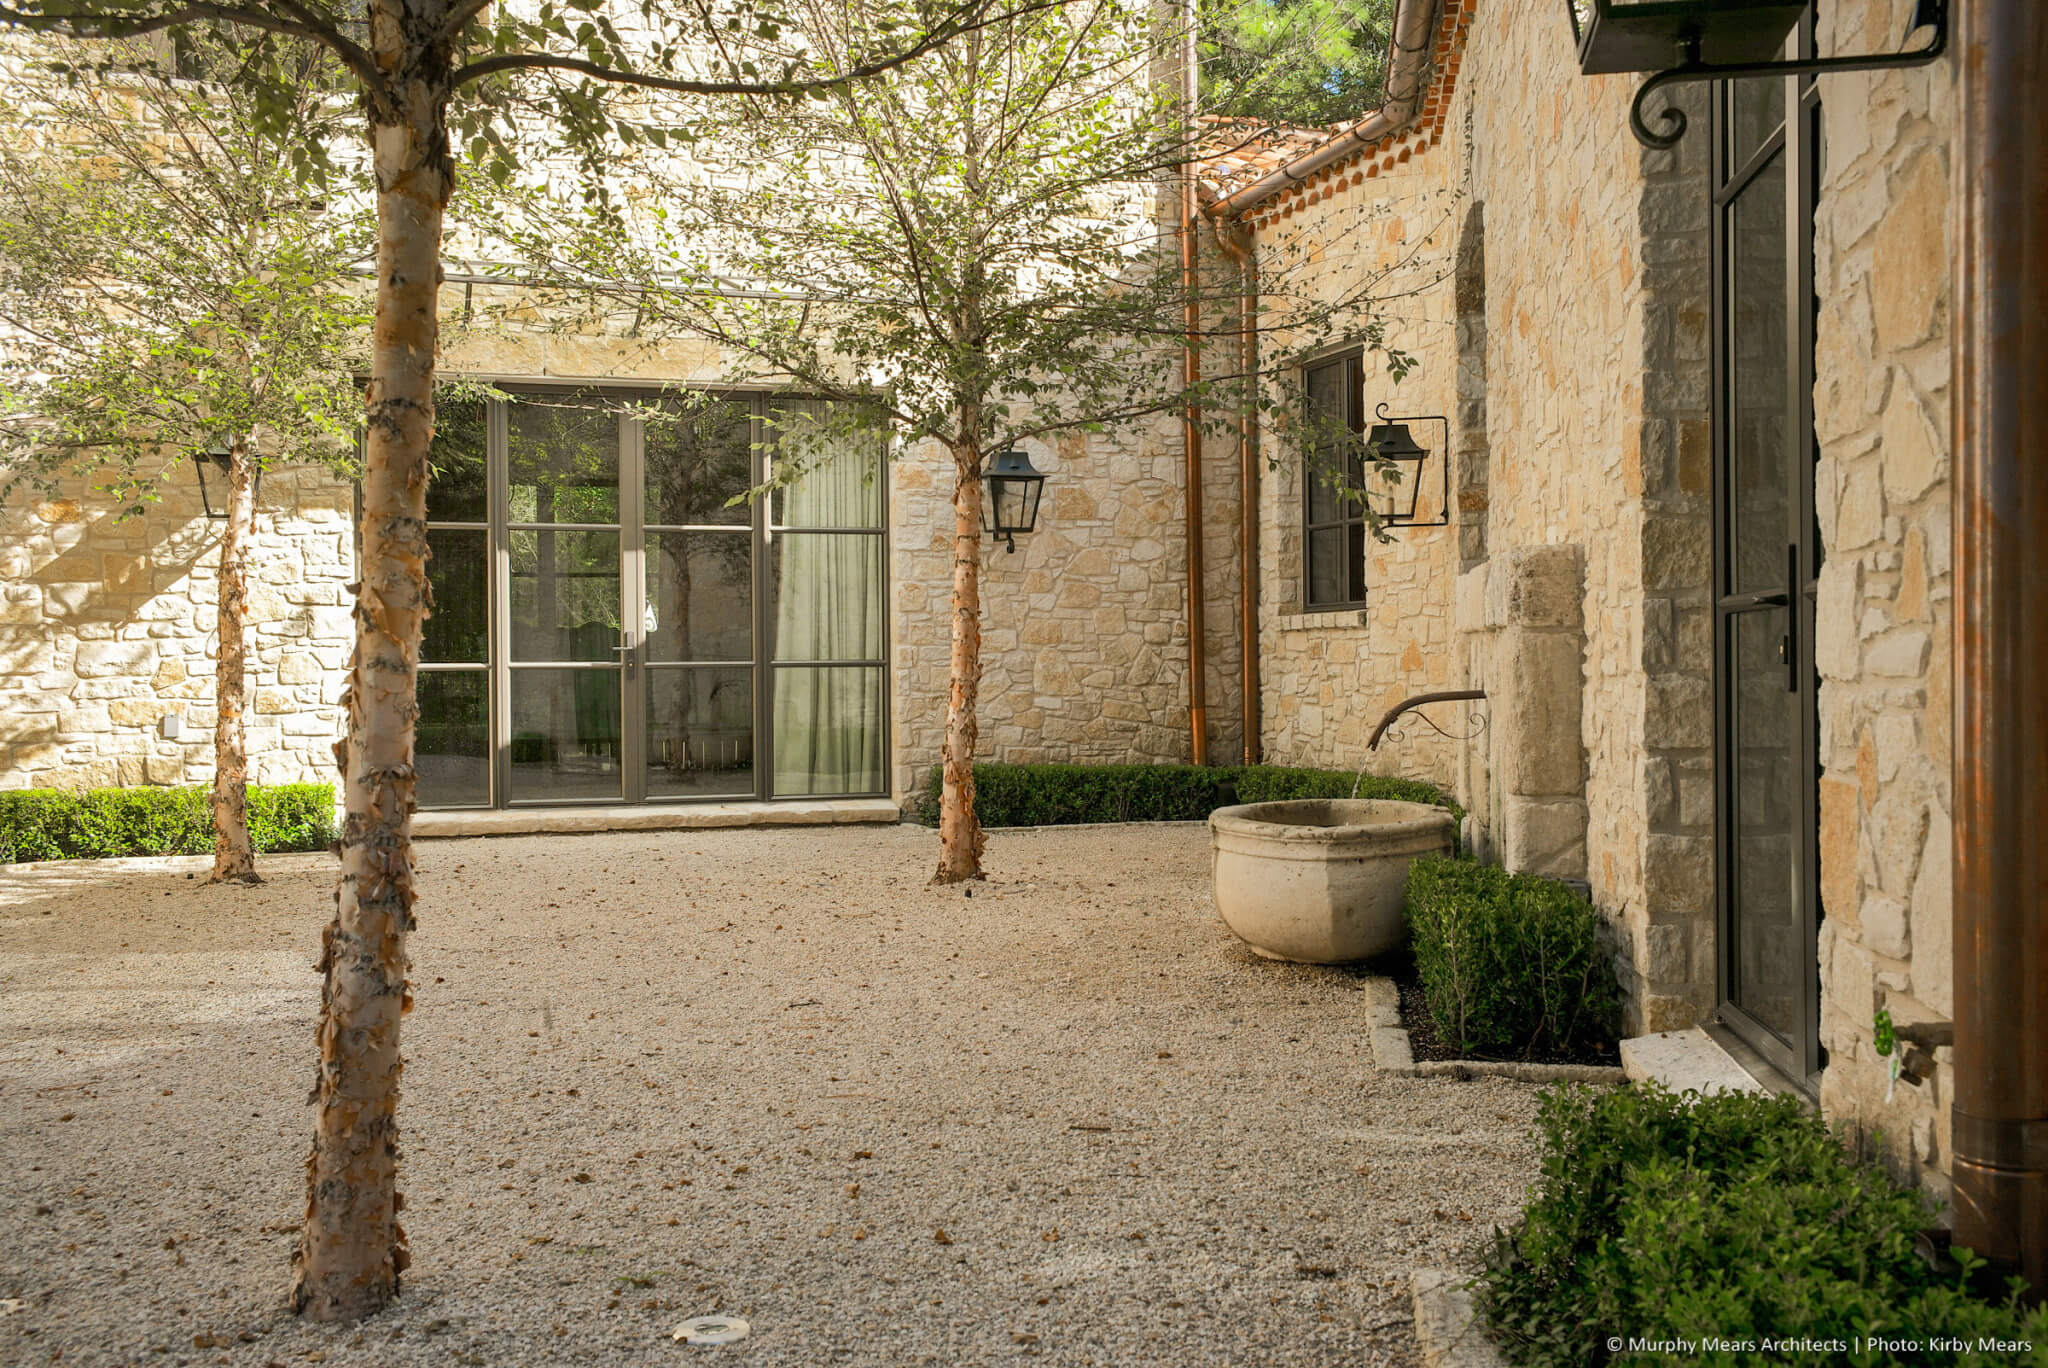 Interior gavel courtyard shaded by single trunk river birch trees.